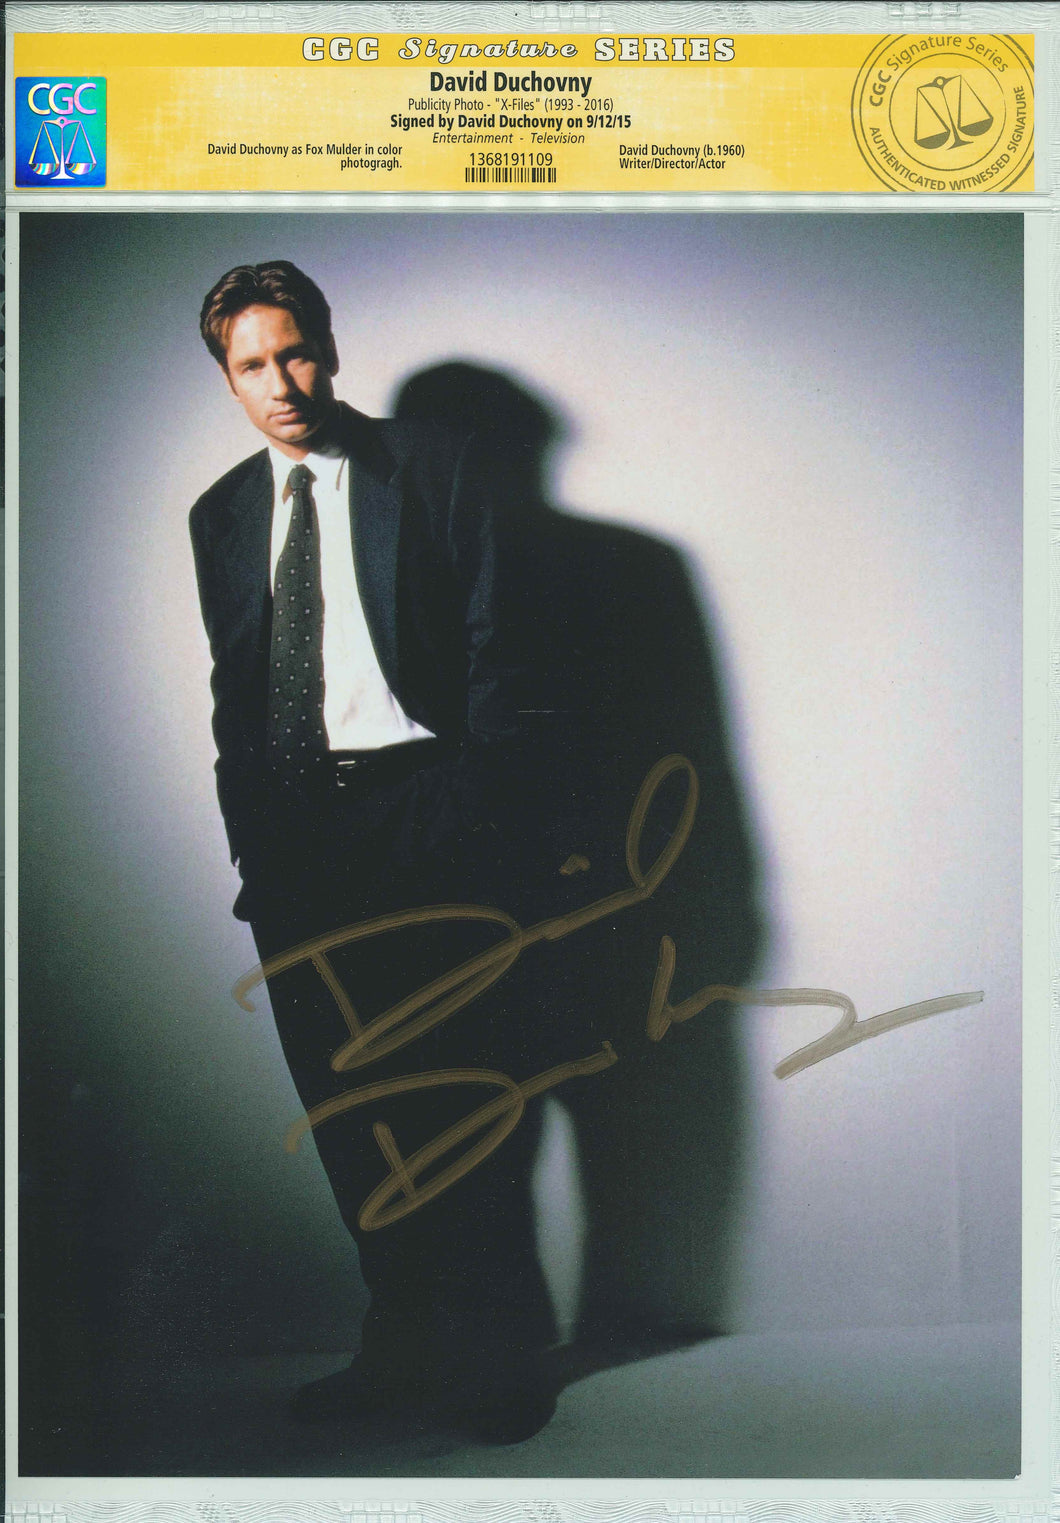 David Duchovny Signed CGC The X-Files Photo